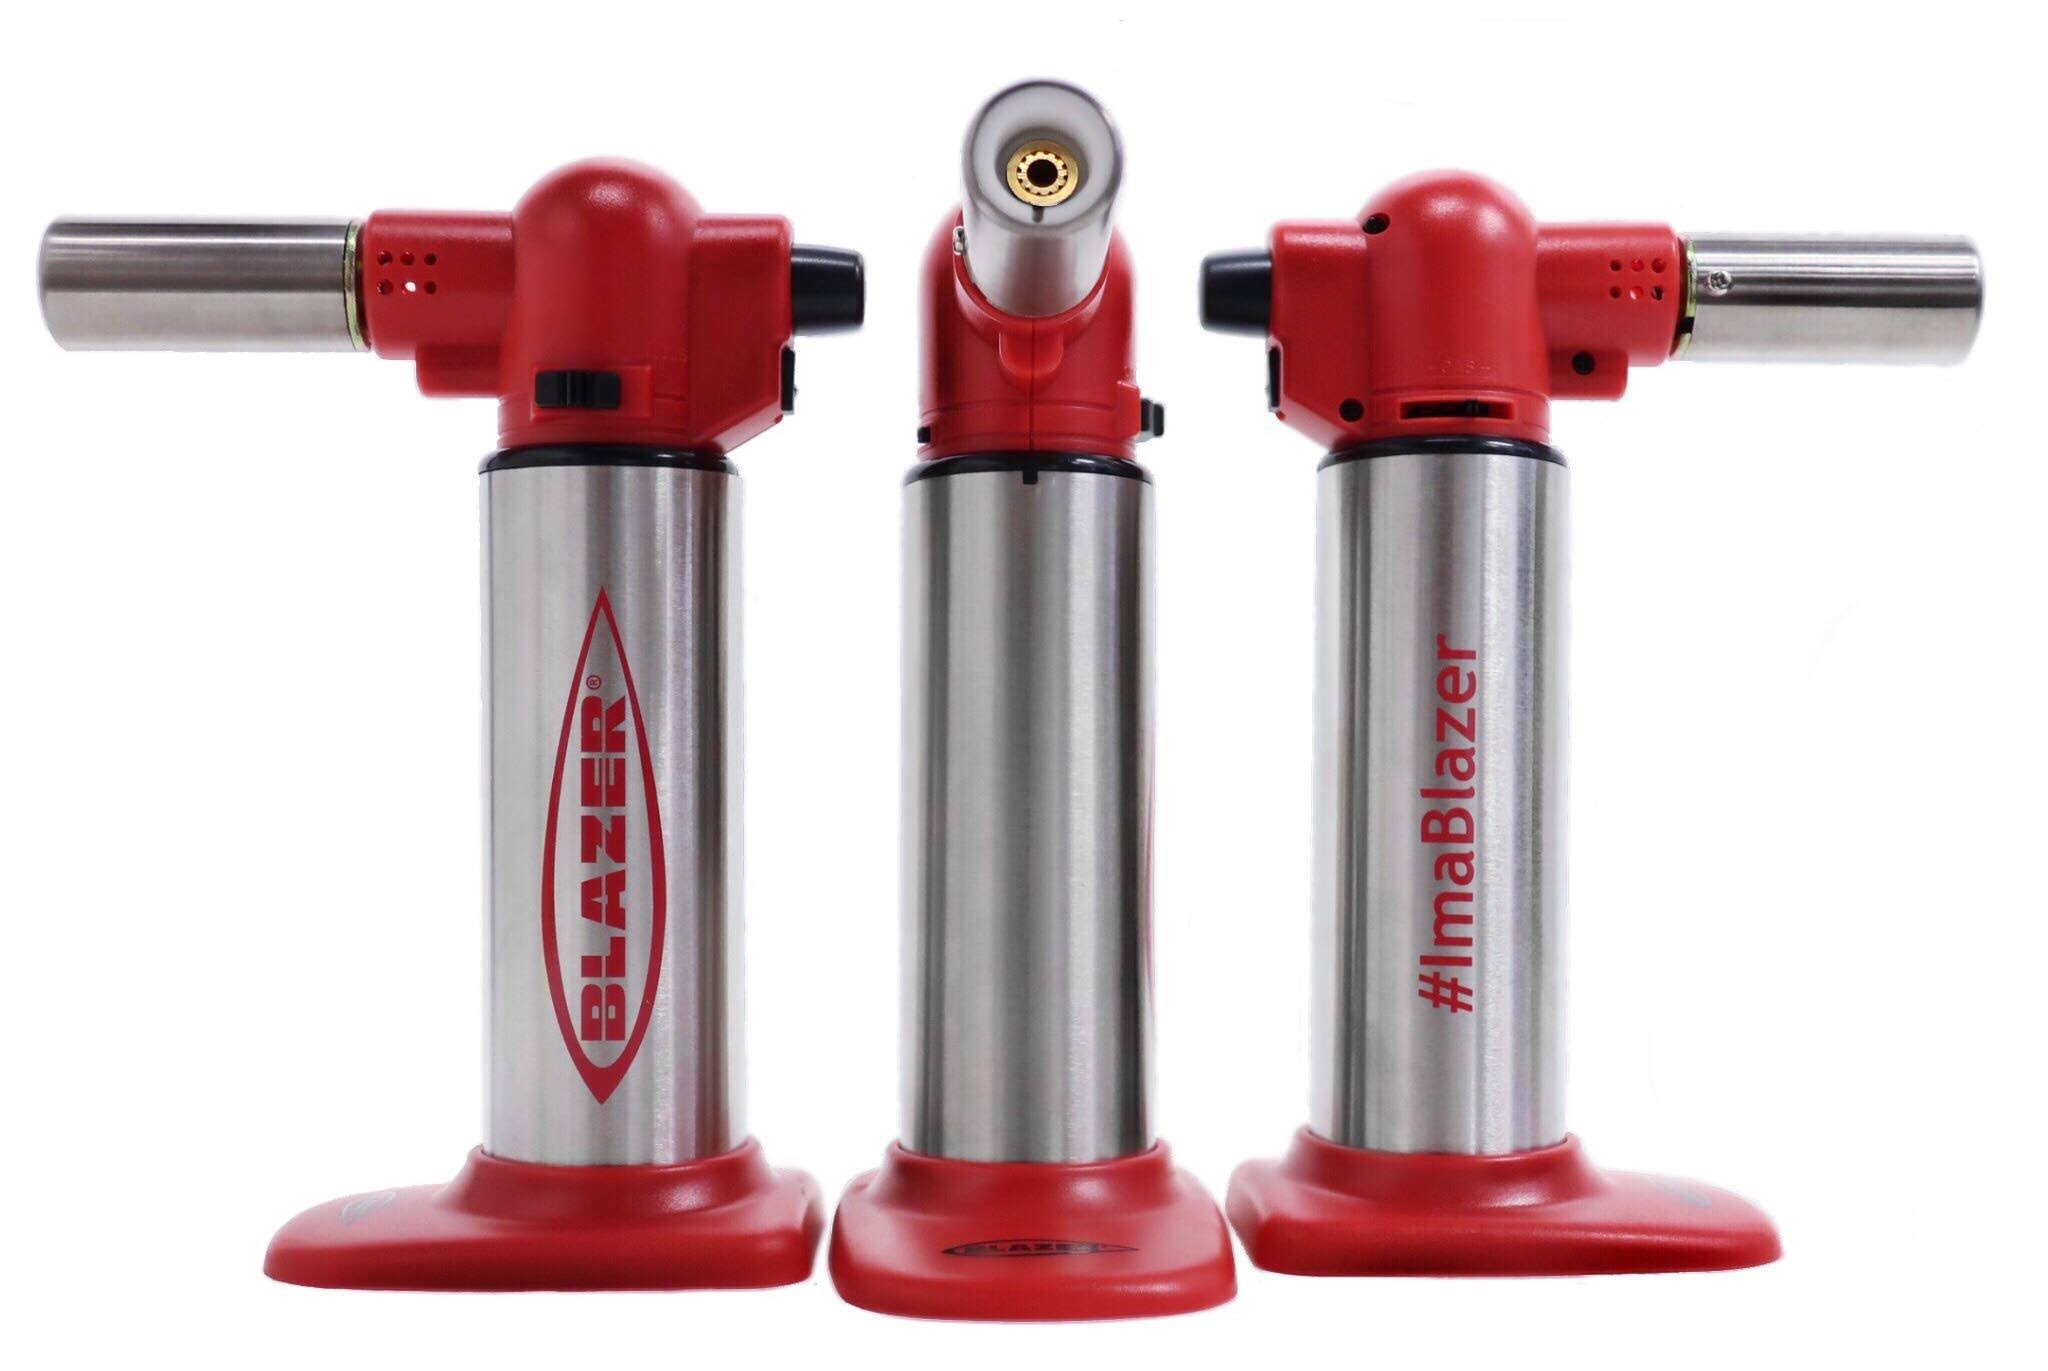 Blazer 189-8020 Big Buddy Turbo Torch - Red